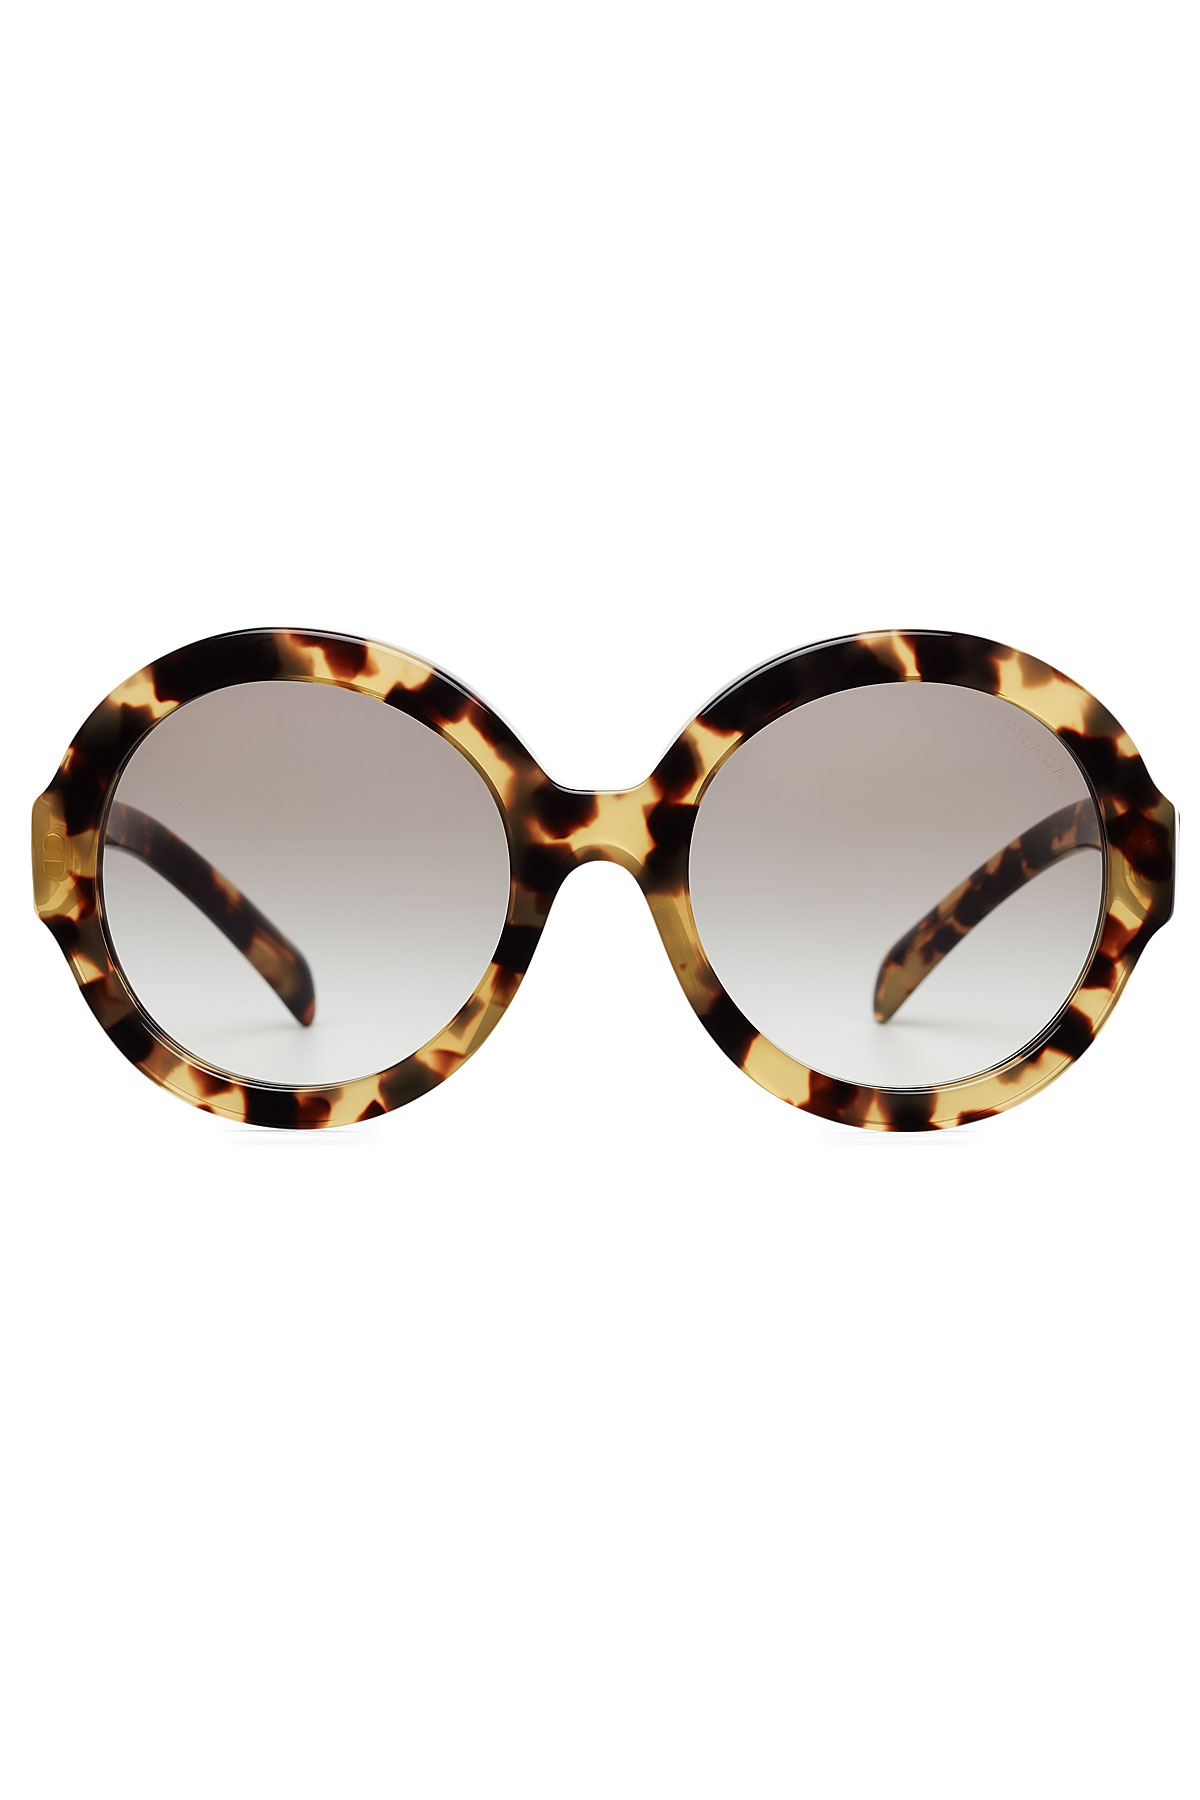 9f2c3a910479 ... discount lyst prada pr06rs oversize round sunglasses animal prints in  brown caf96 3c19a